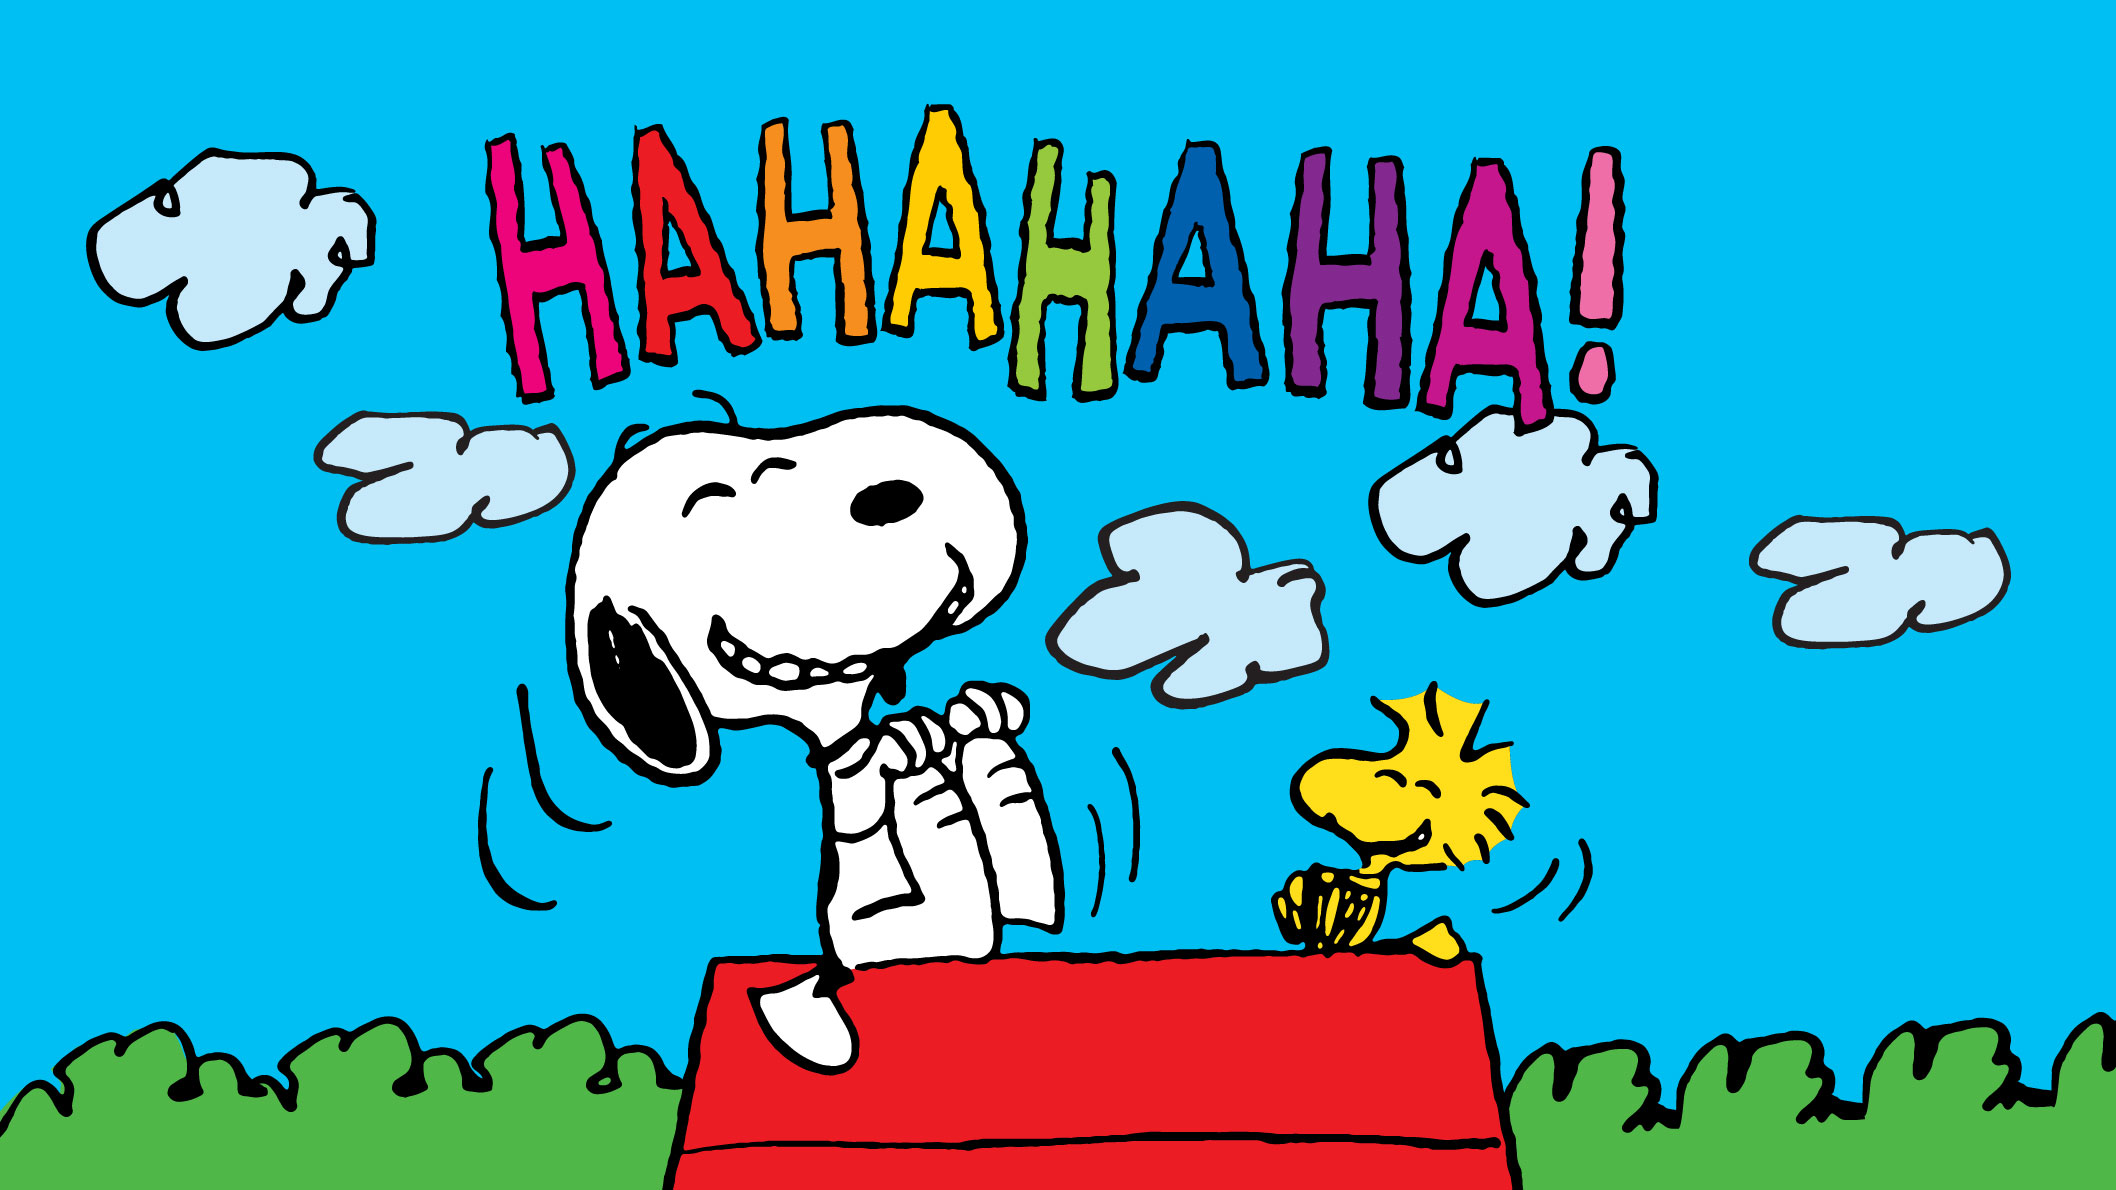 A black and white beagle and a little yellow bird laughing with the words Hahahahahaha!